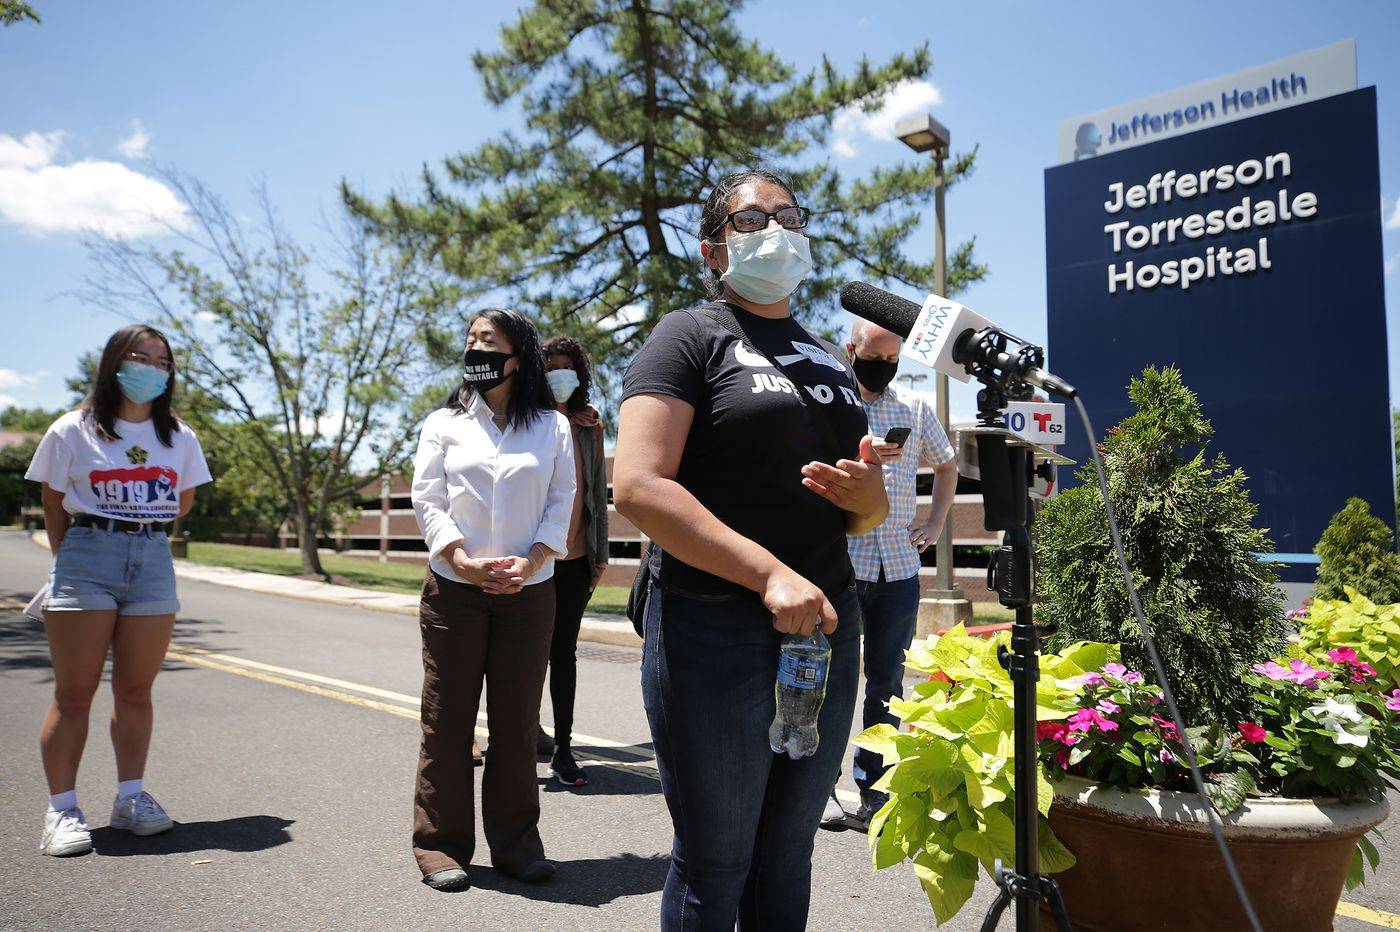 Guatemalan immigrant who faced a hospital 'medical deportation' has been moved to long-term care facility